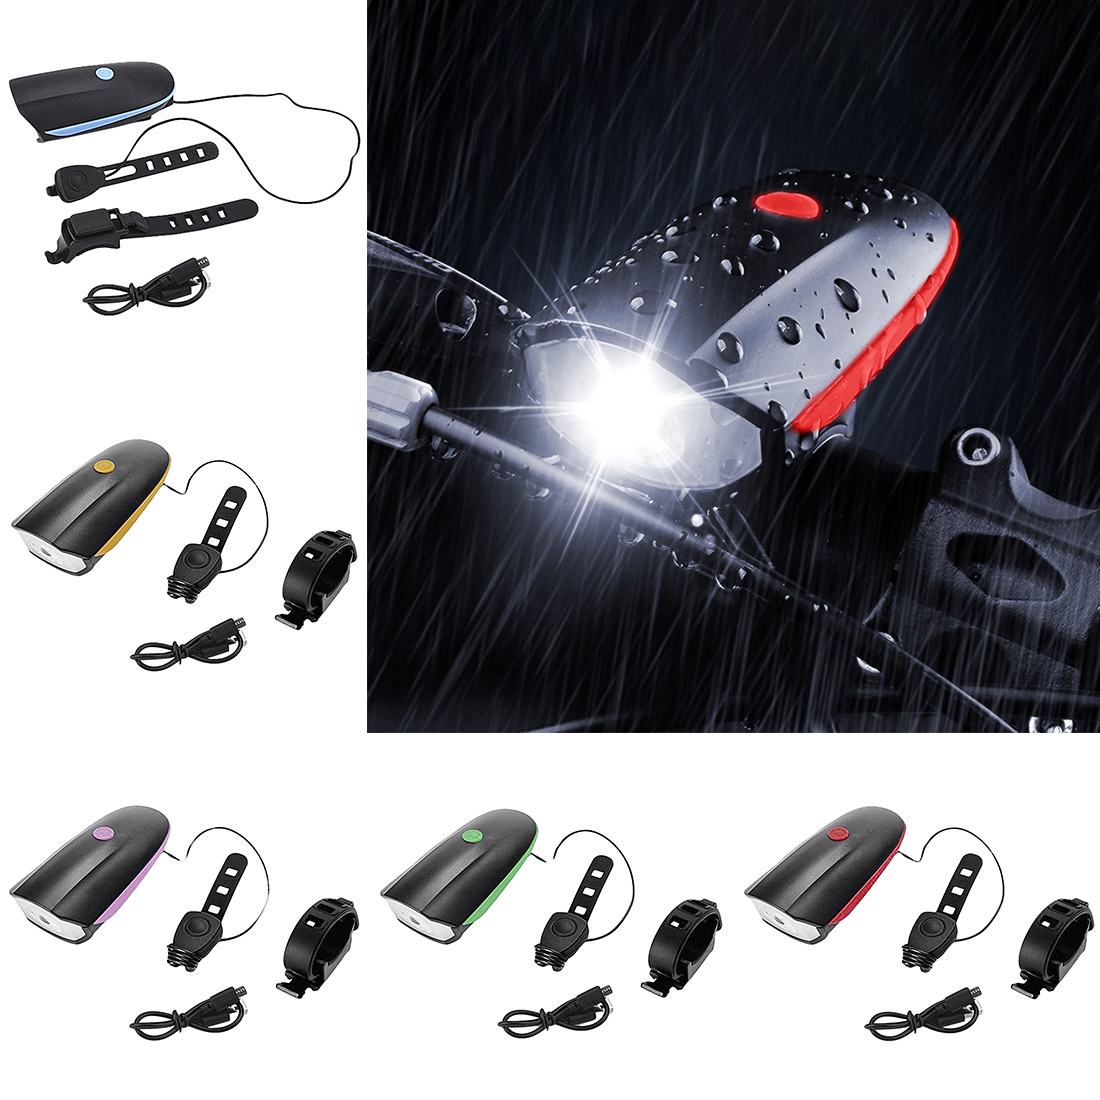 Waterproof Bike Light Bicycle Head LED Flashlight With 120 Db Bell Multifunction Cycle Lamp MTB Cycling Light Bike Accessories